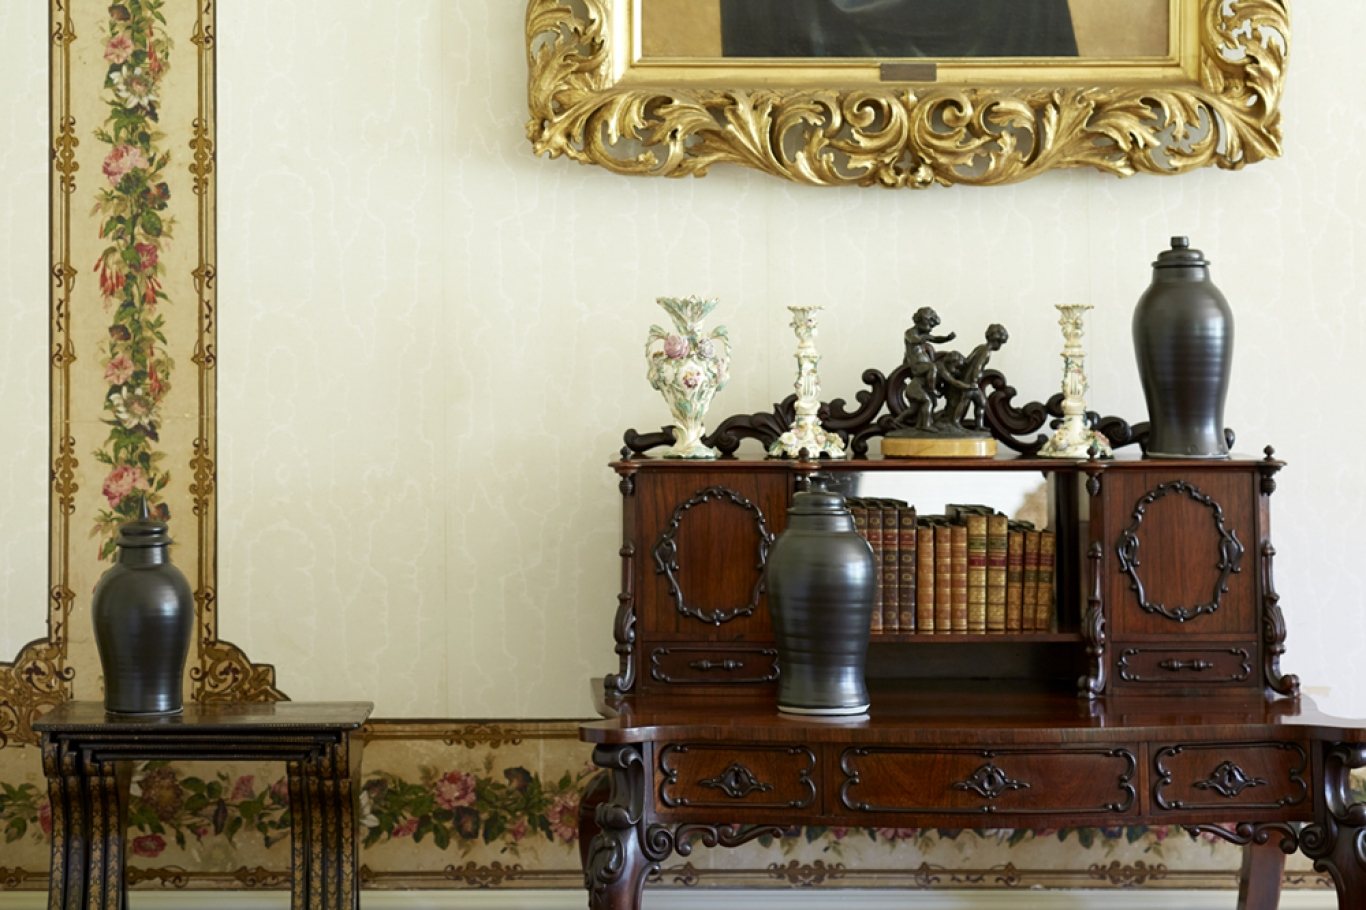 Urns sit on decorative table at Vaucluse House